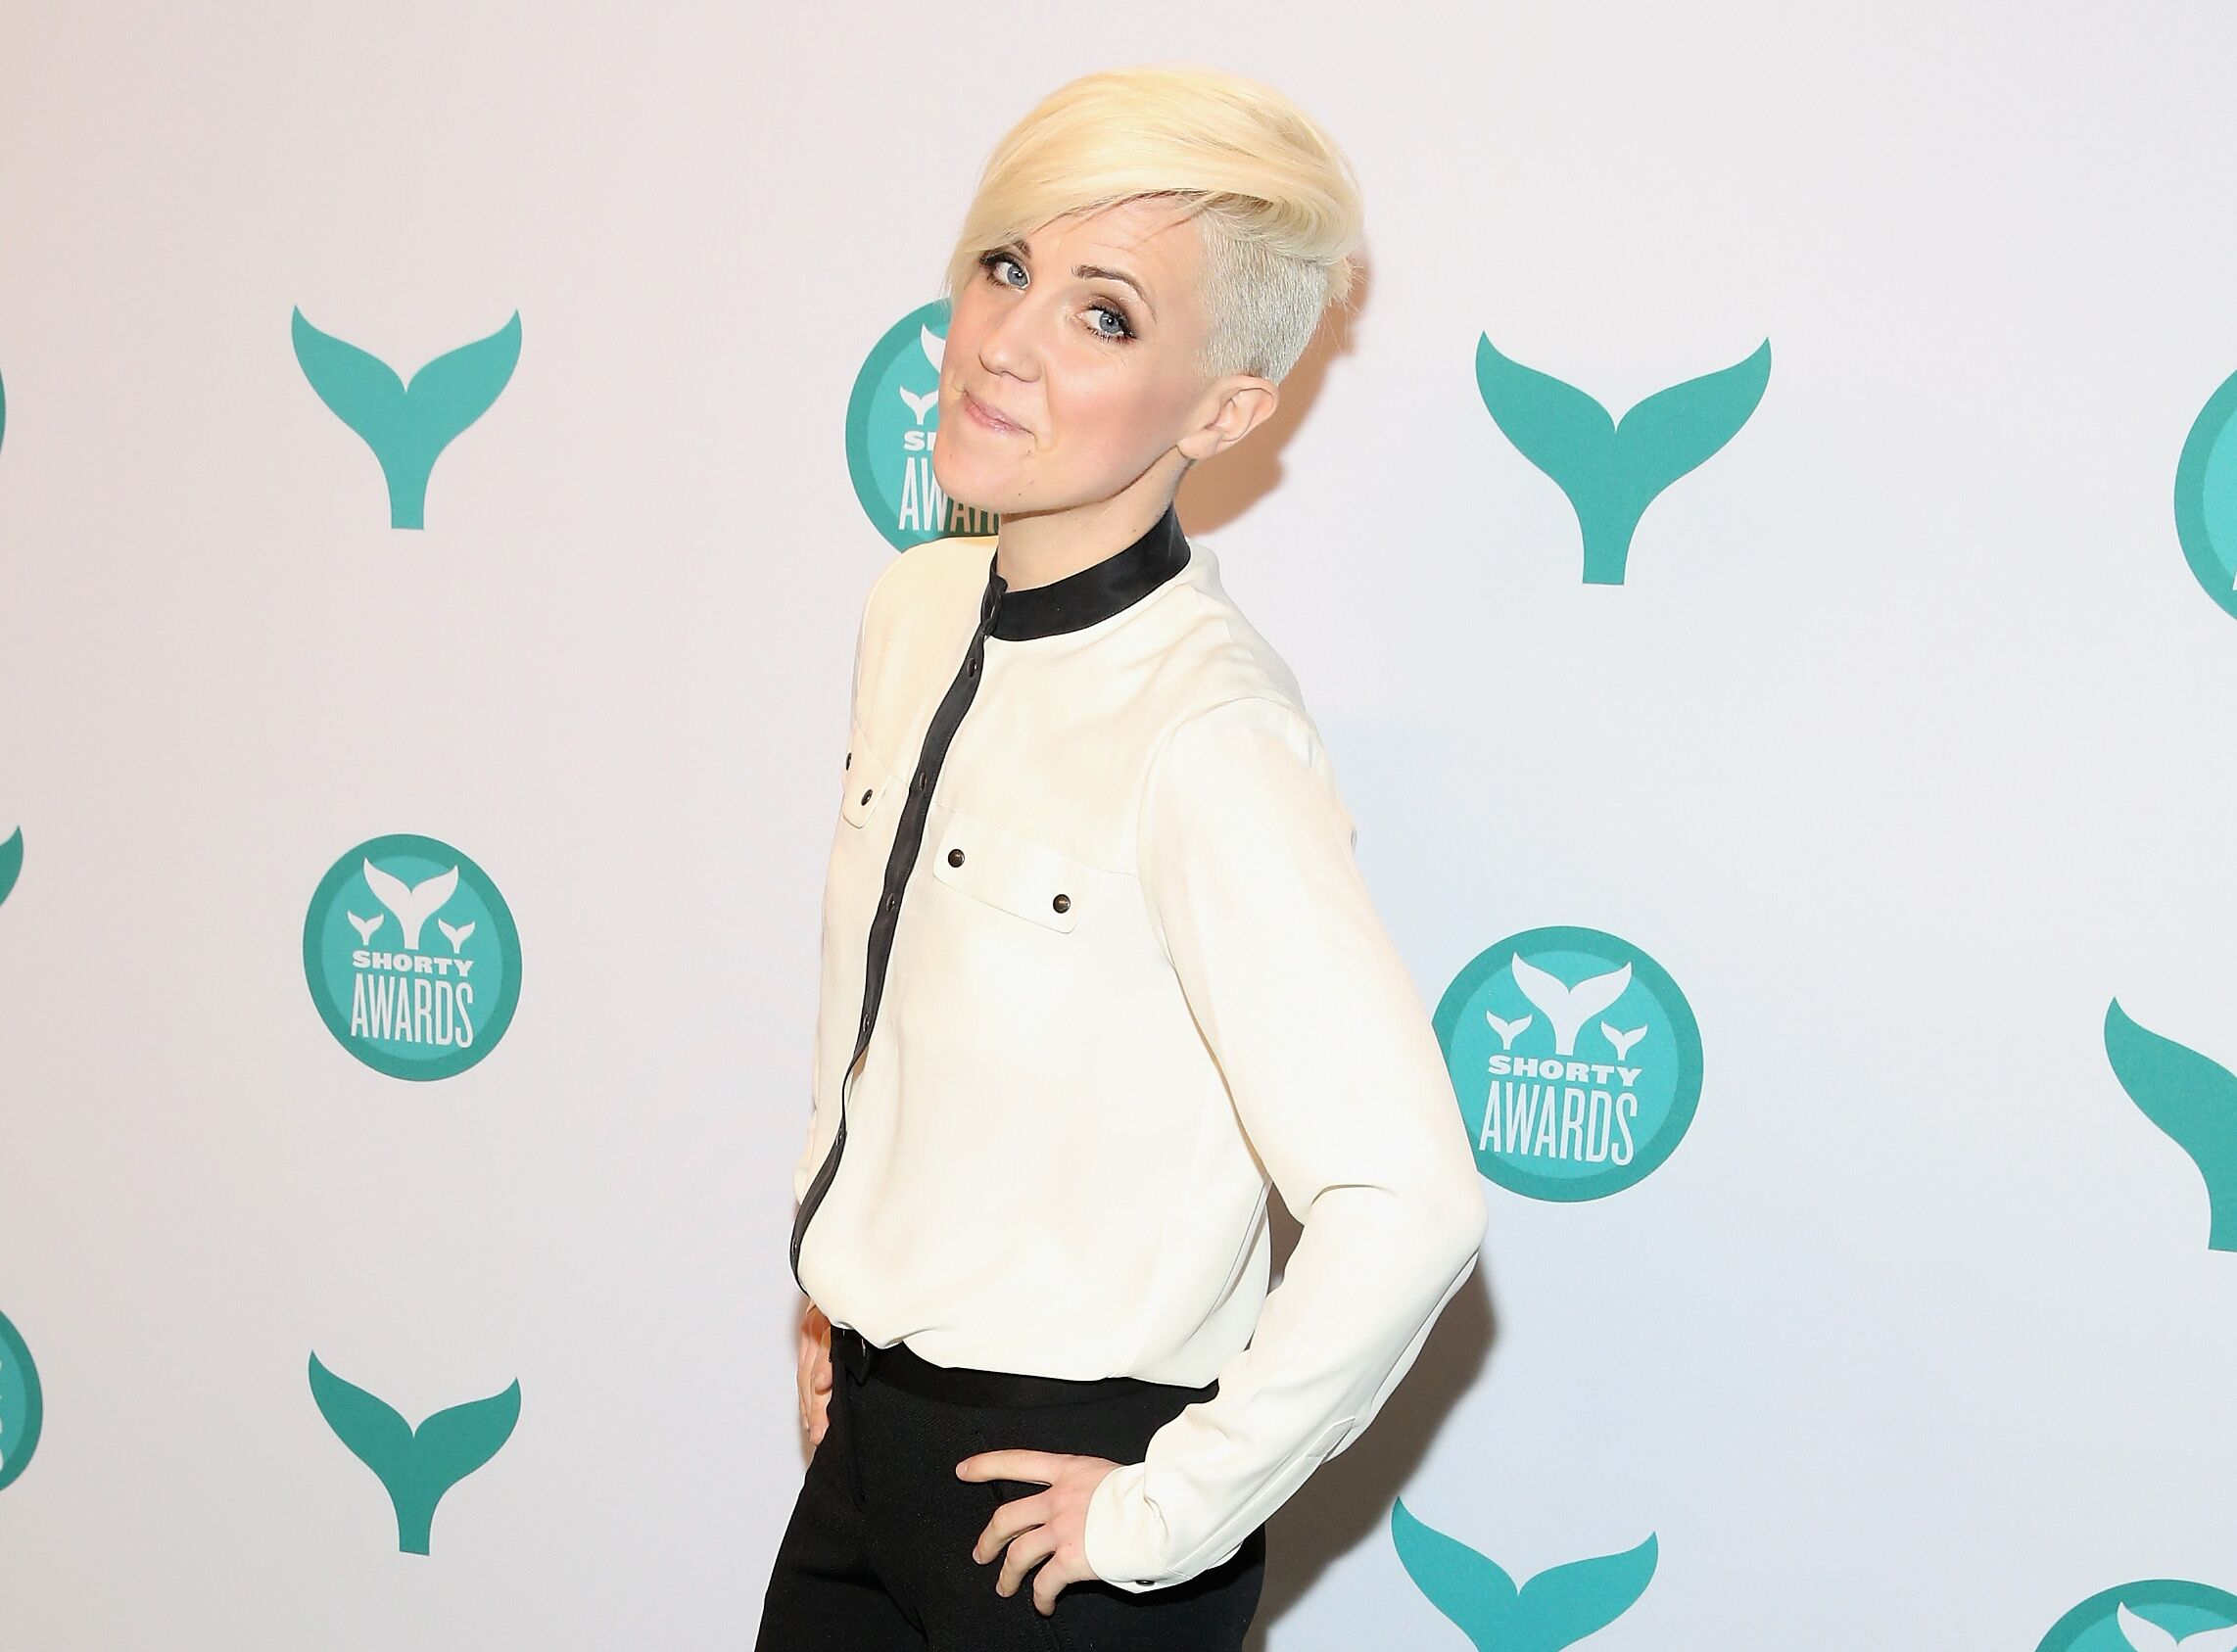 Hannah Hart: From My Drunk Kitchen to Food Network star